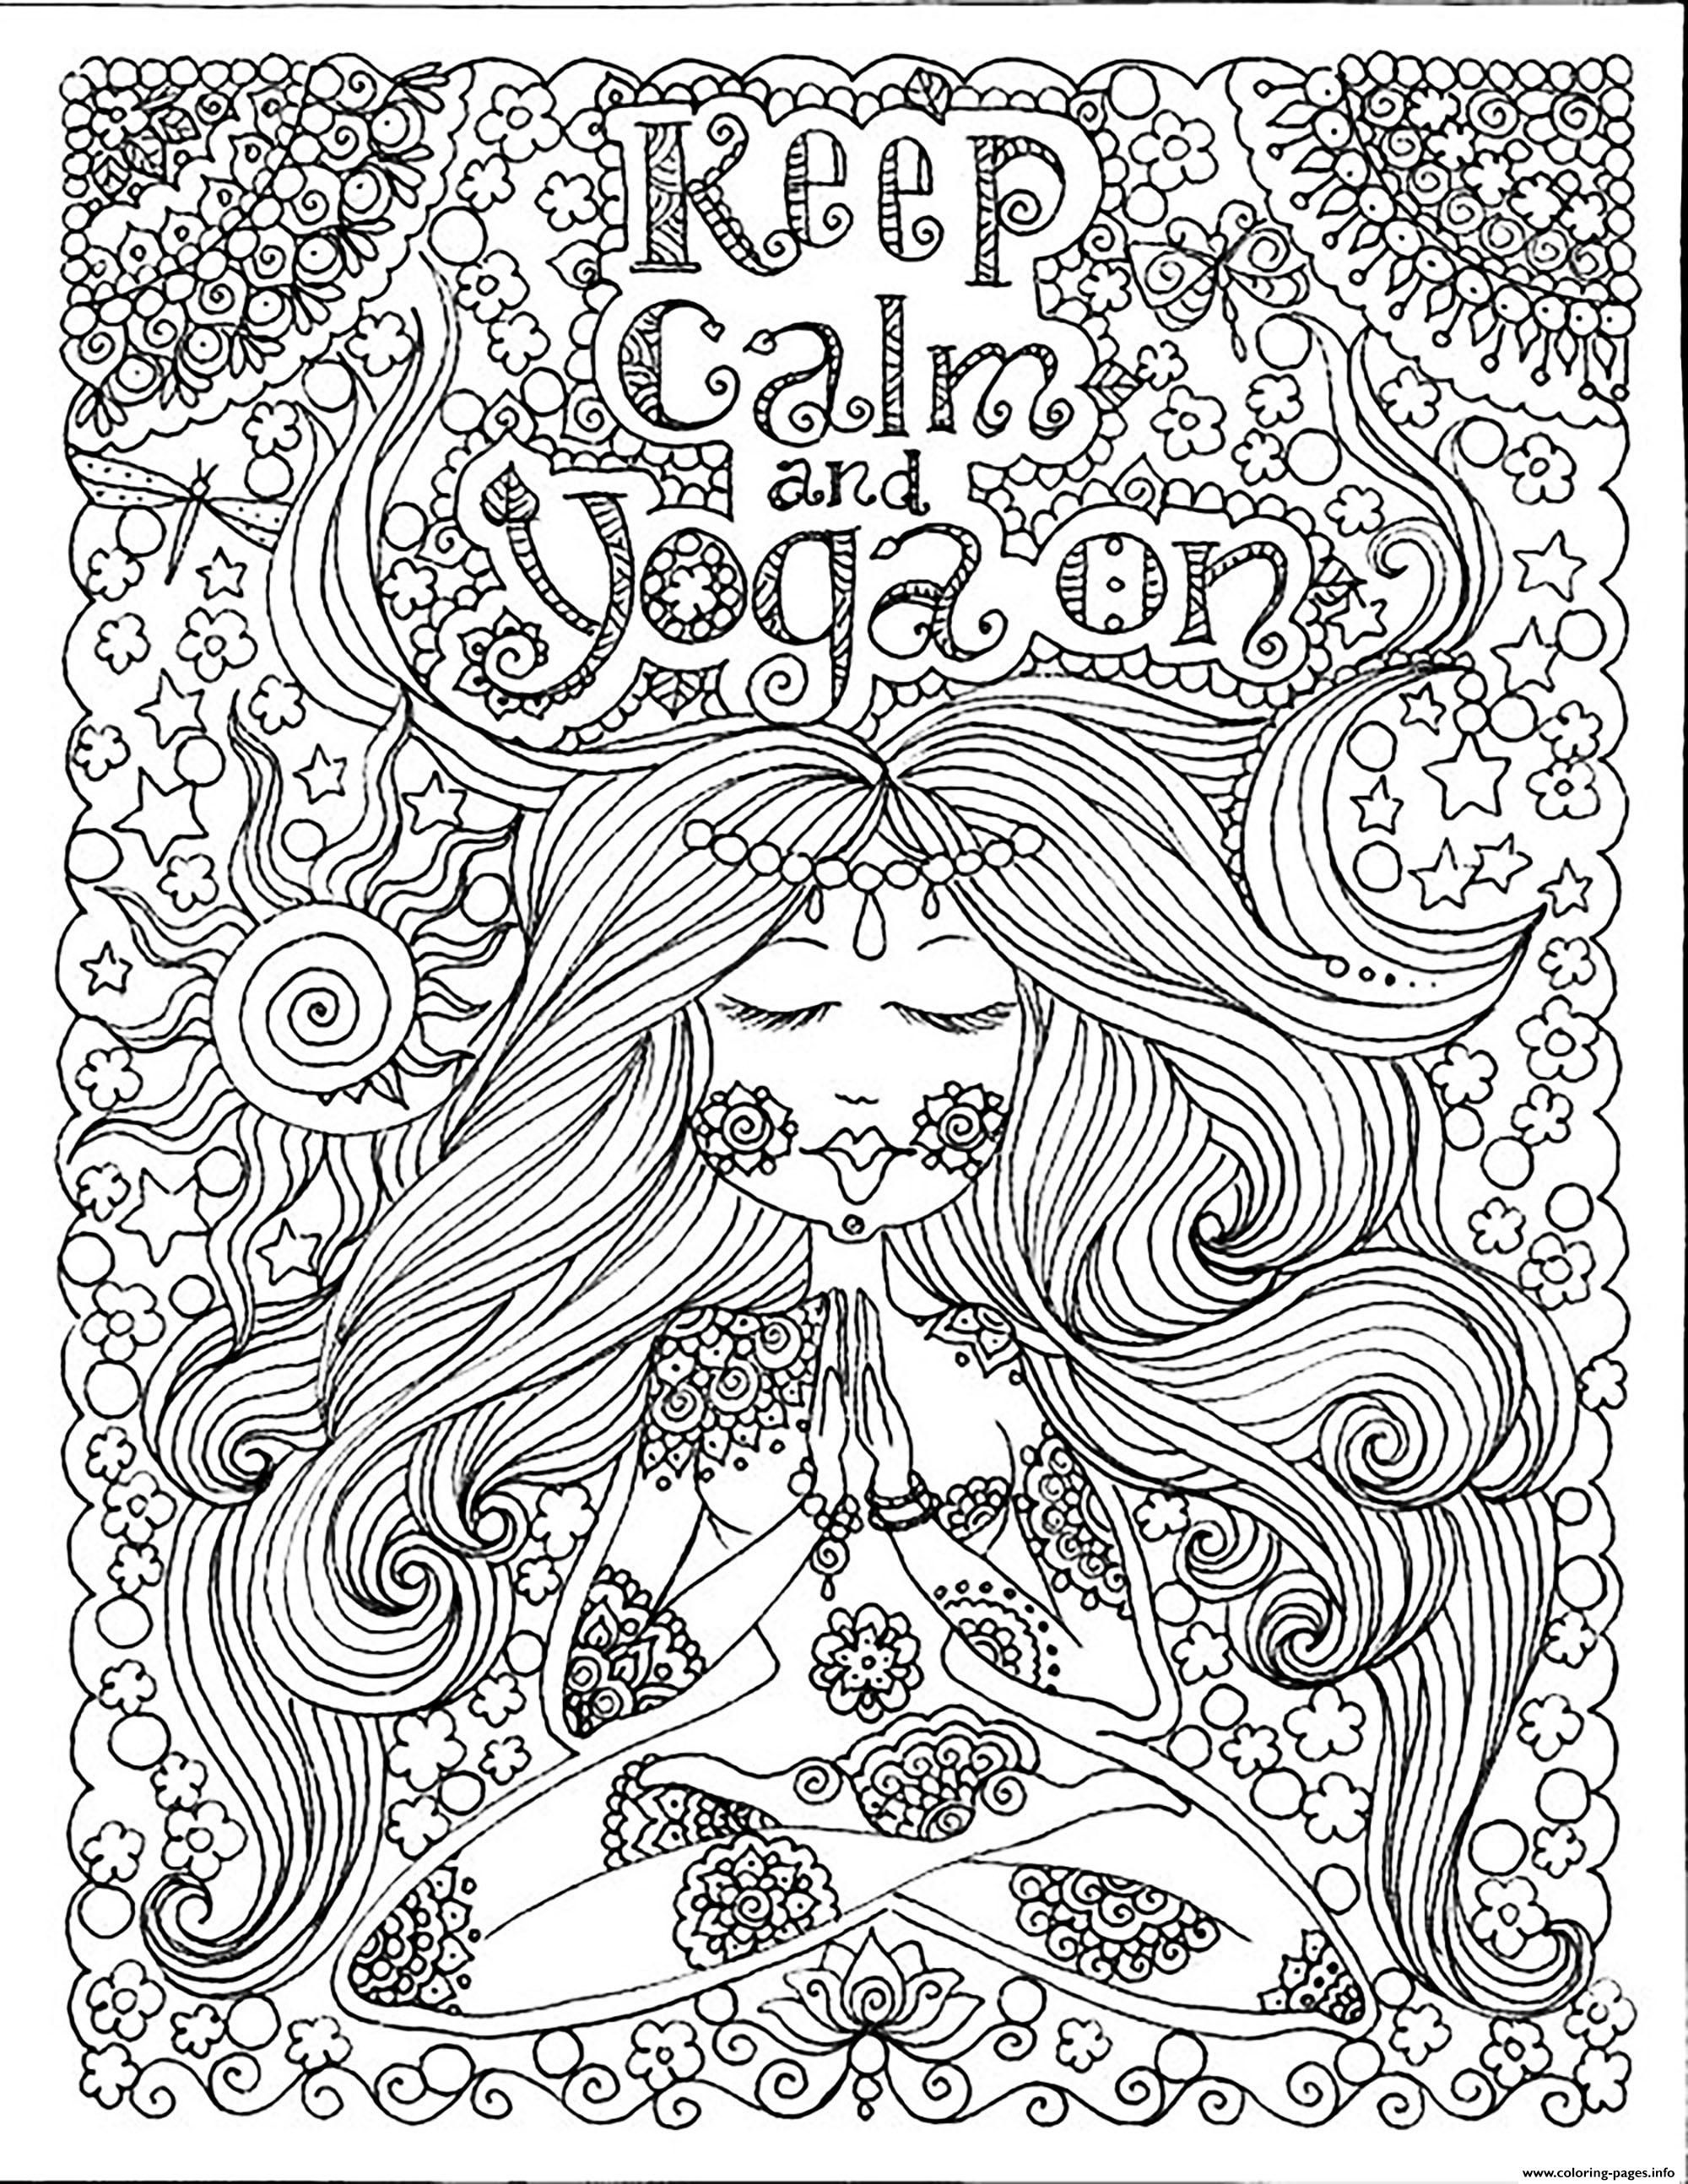 calming coloring pages for adults printable | Print adult keep calm and do yoga by deborah muller ...